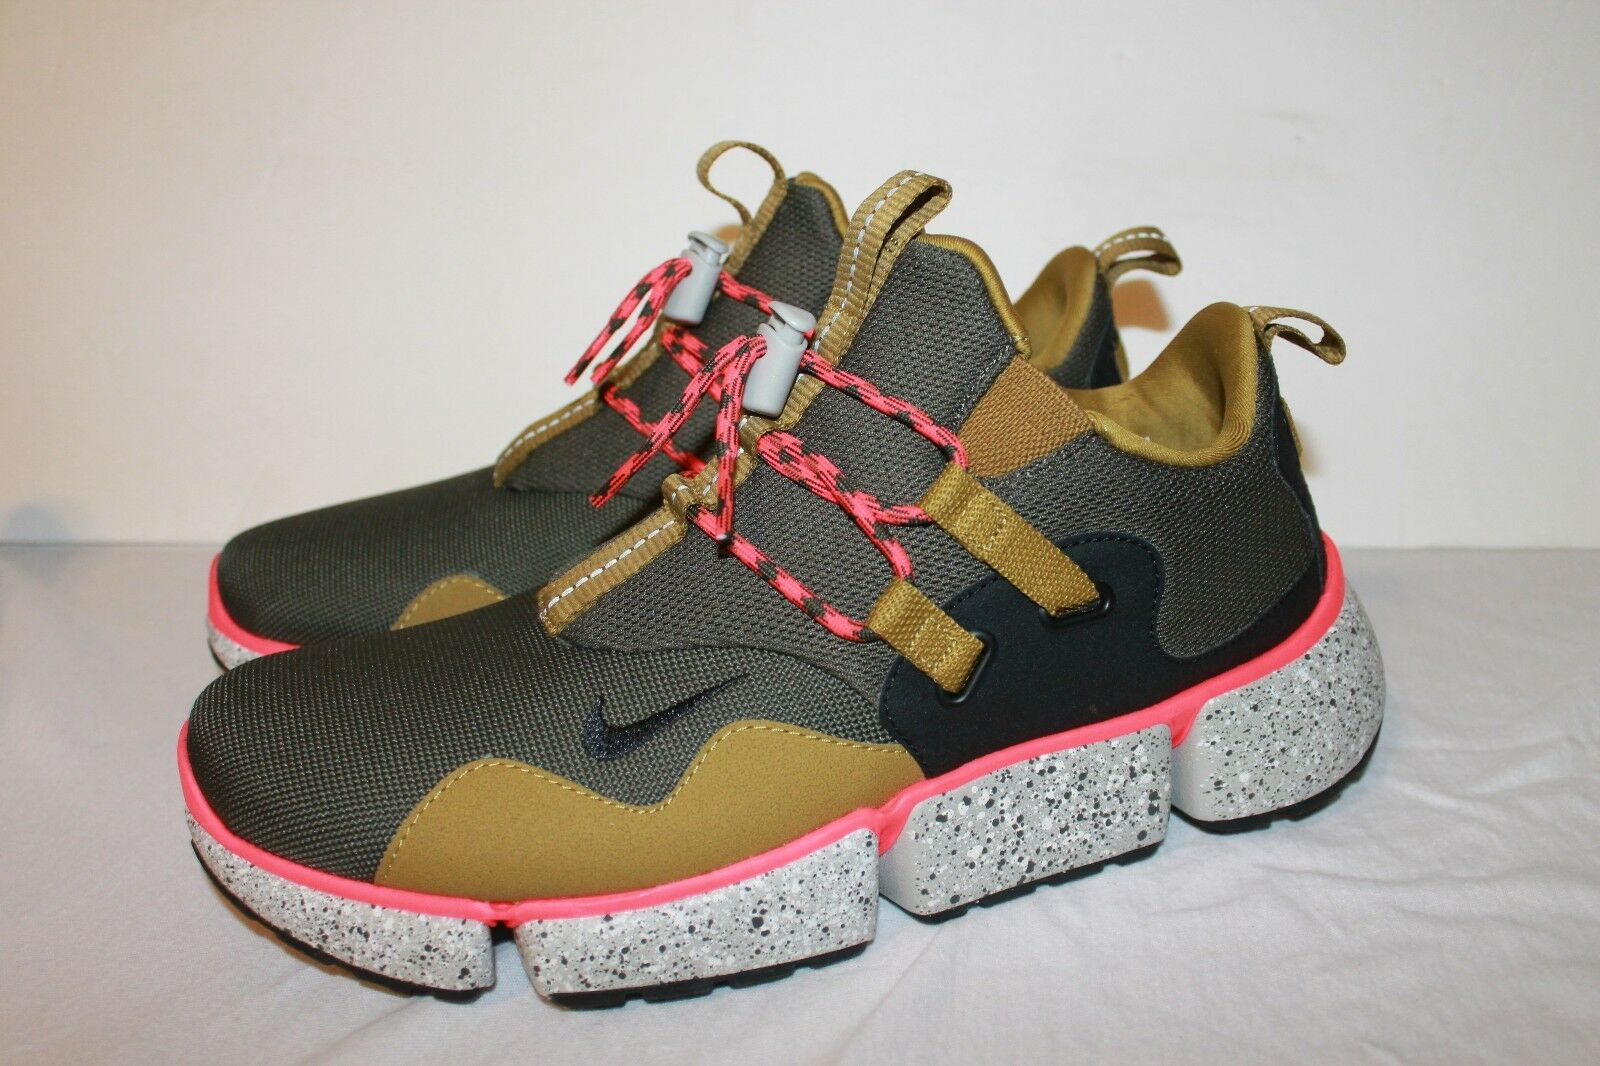 Nike Pocket Knife DM Desert Moss  Sample 898033-300 Size 9.5